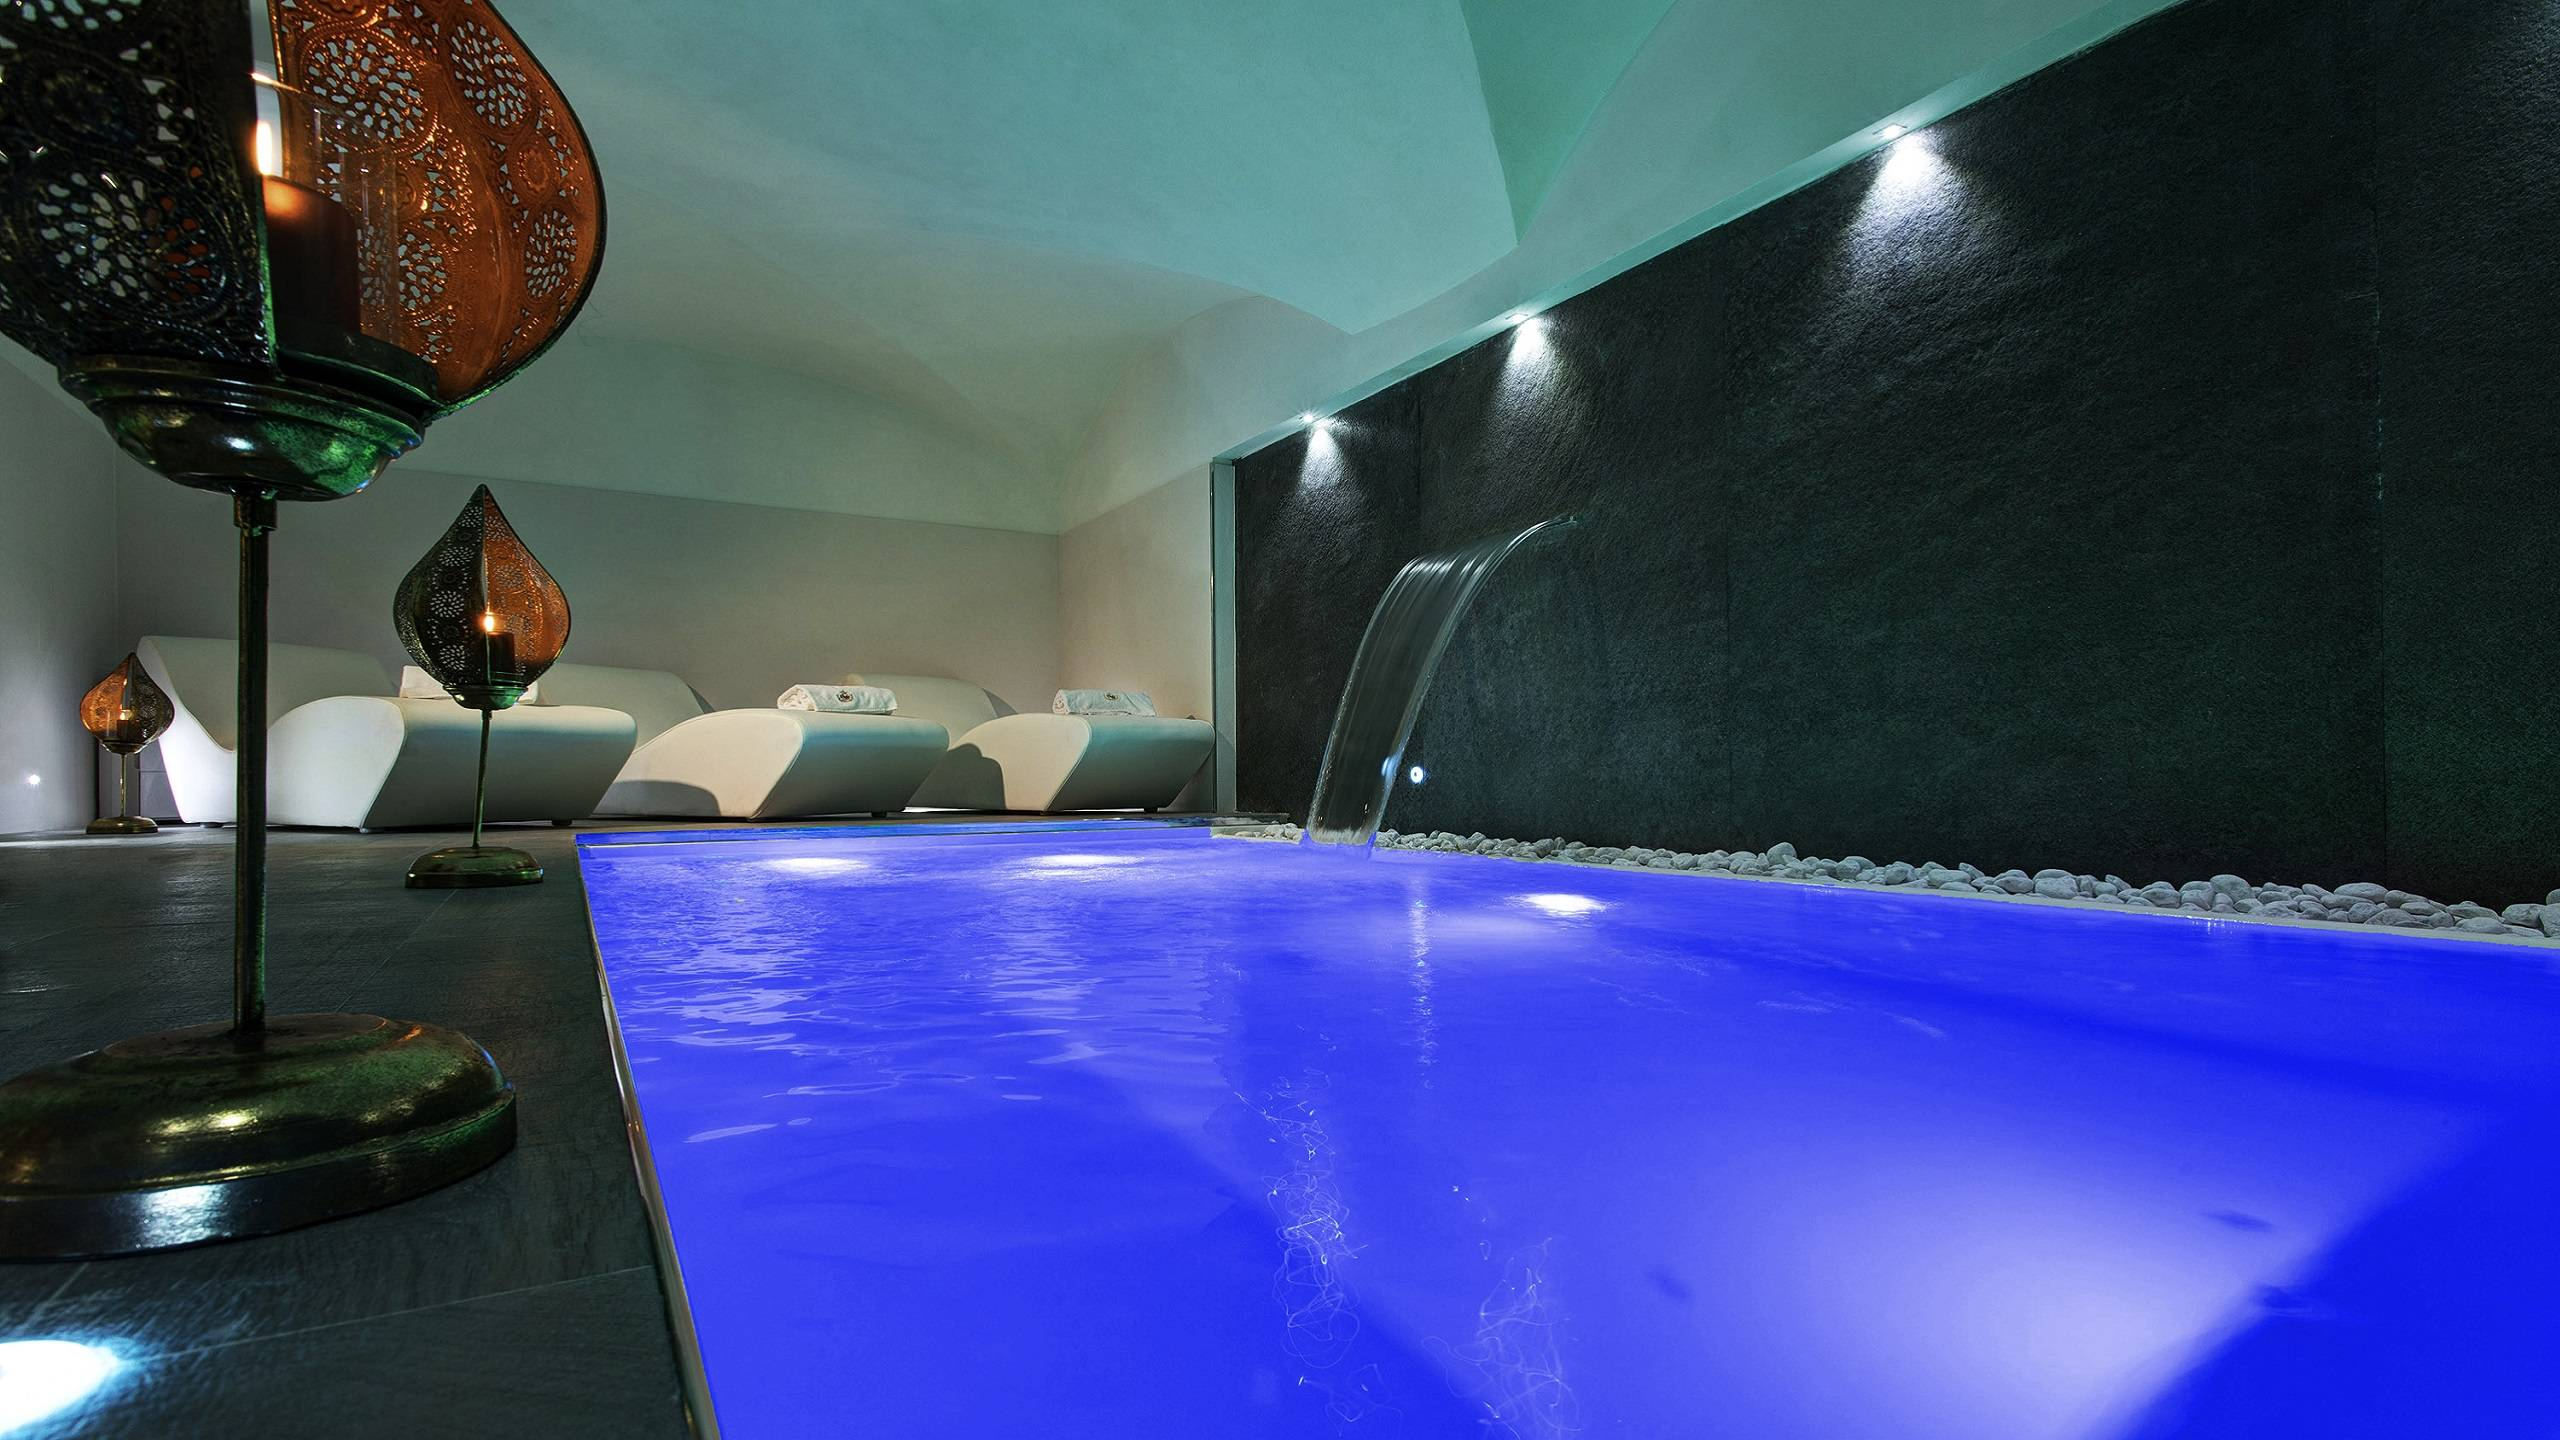 Opera relax wellness roma centro benessere for Piscina wellness roma